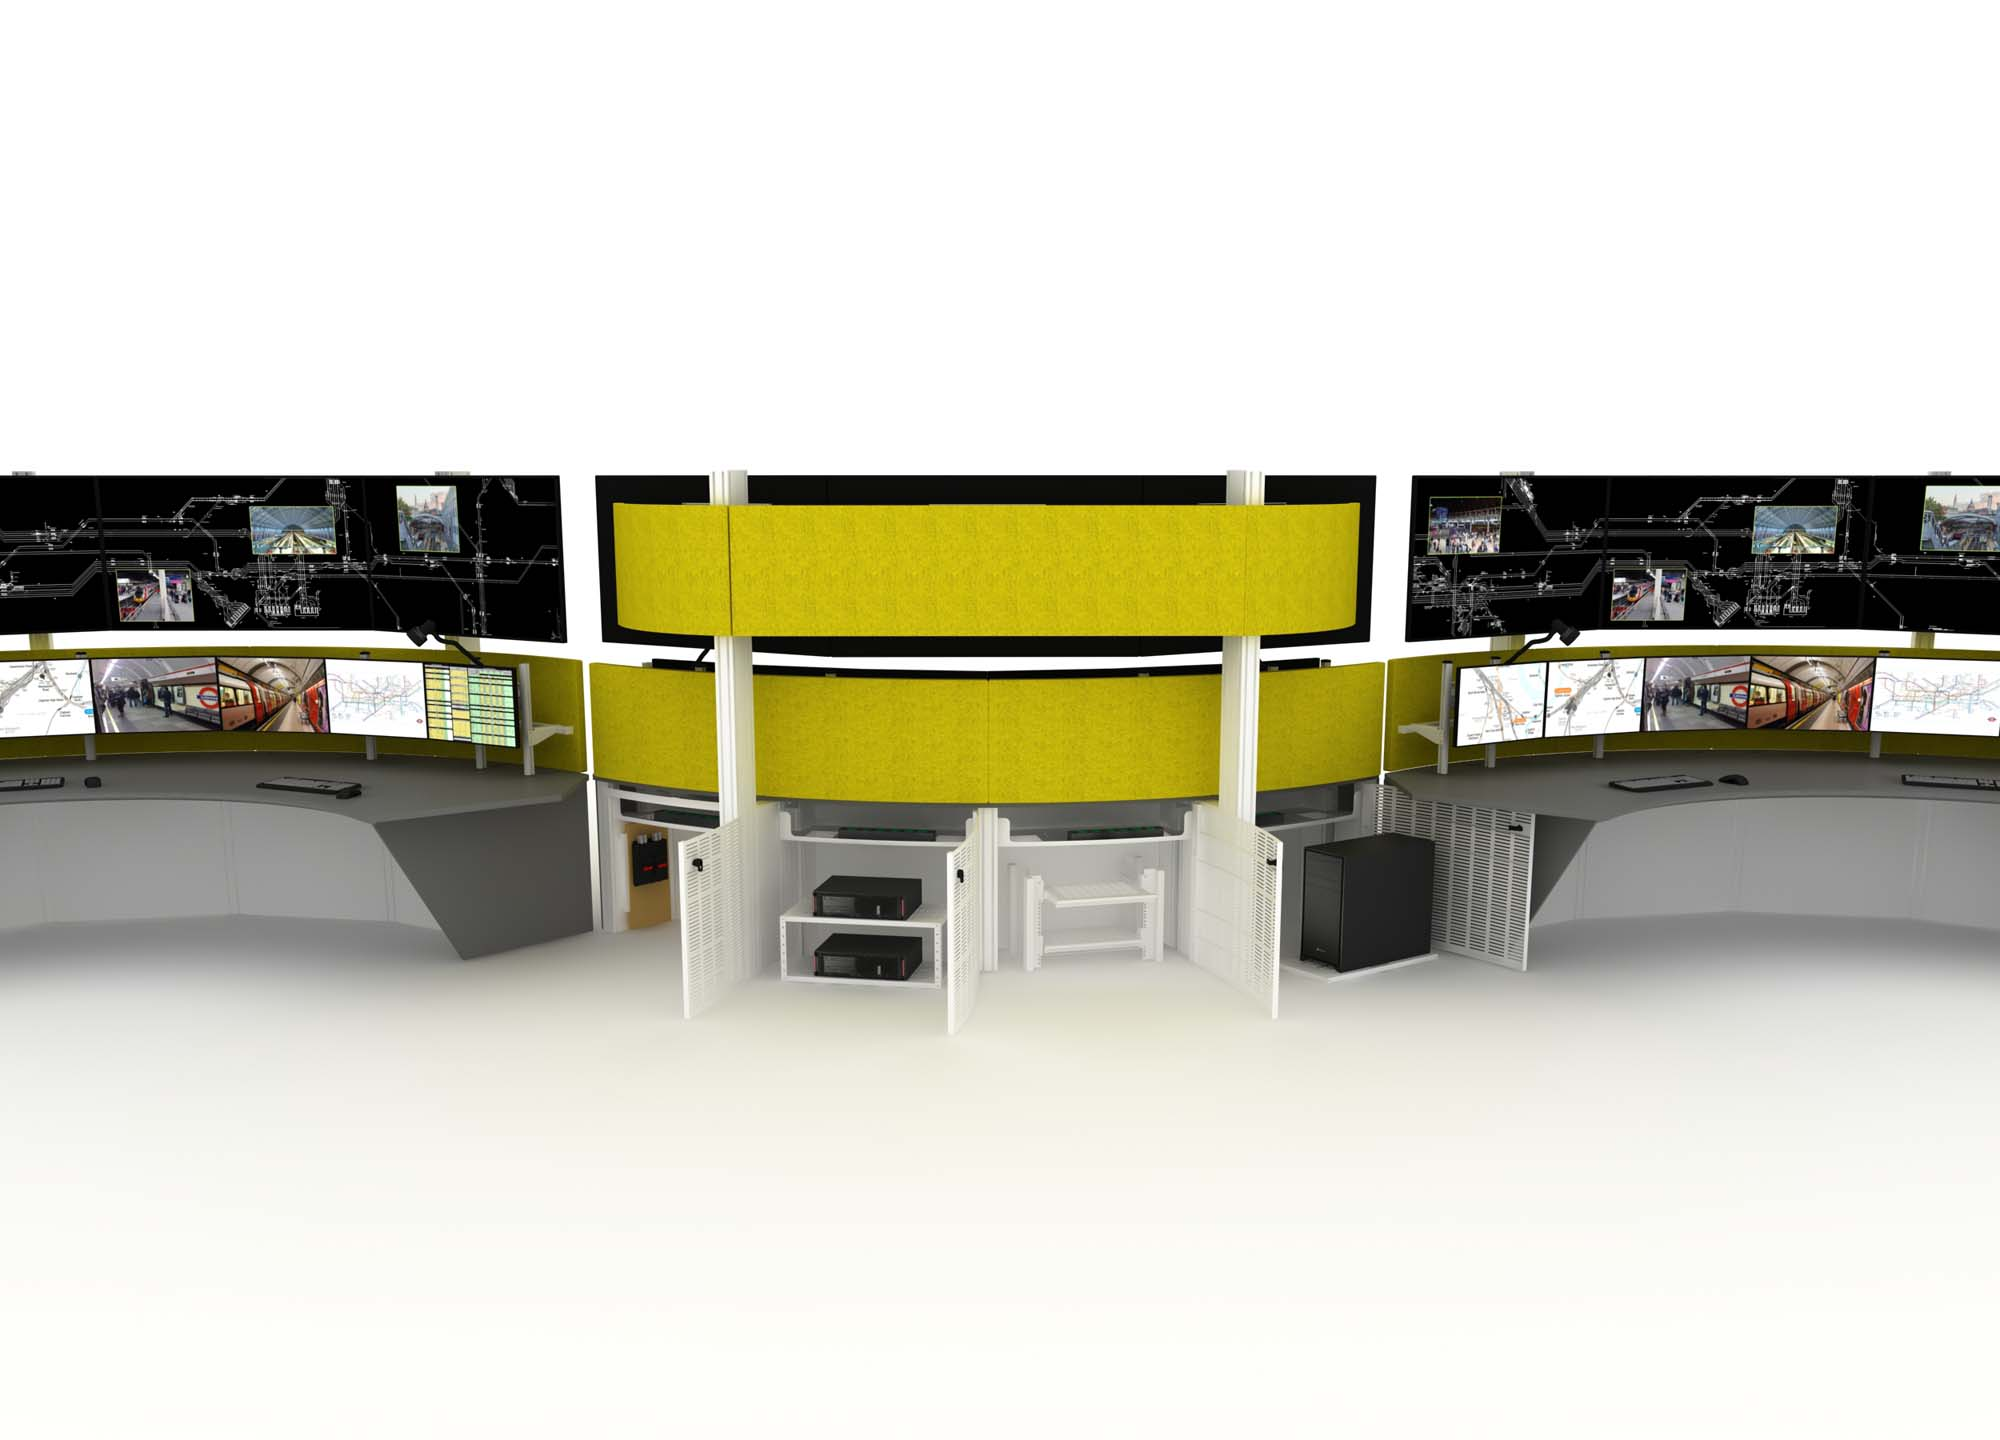 Ergonomic Security Desk Furniture in a Control Room including Technology Integration capability